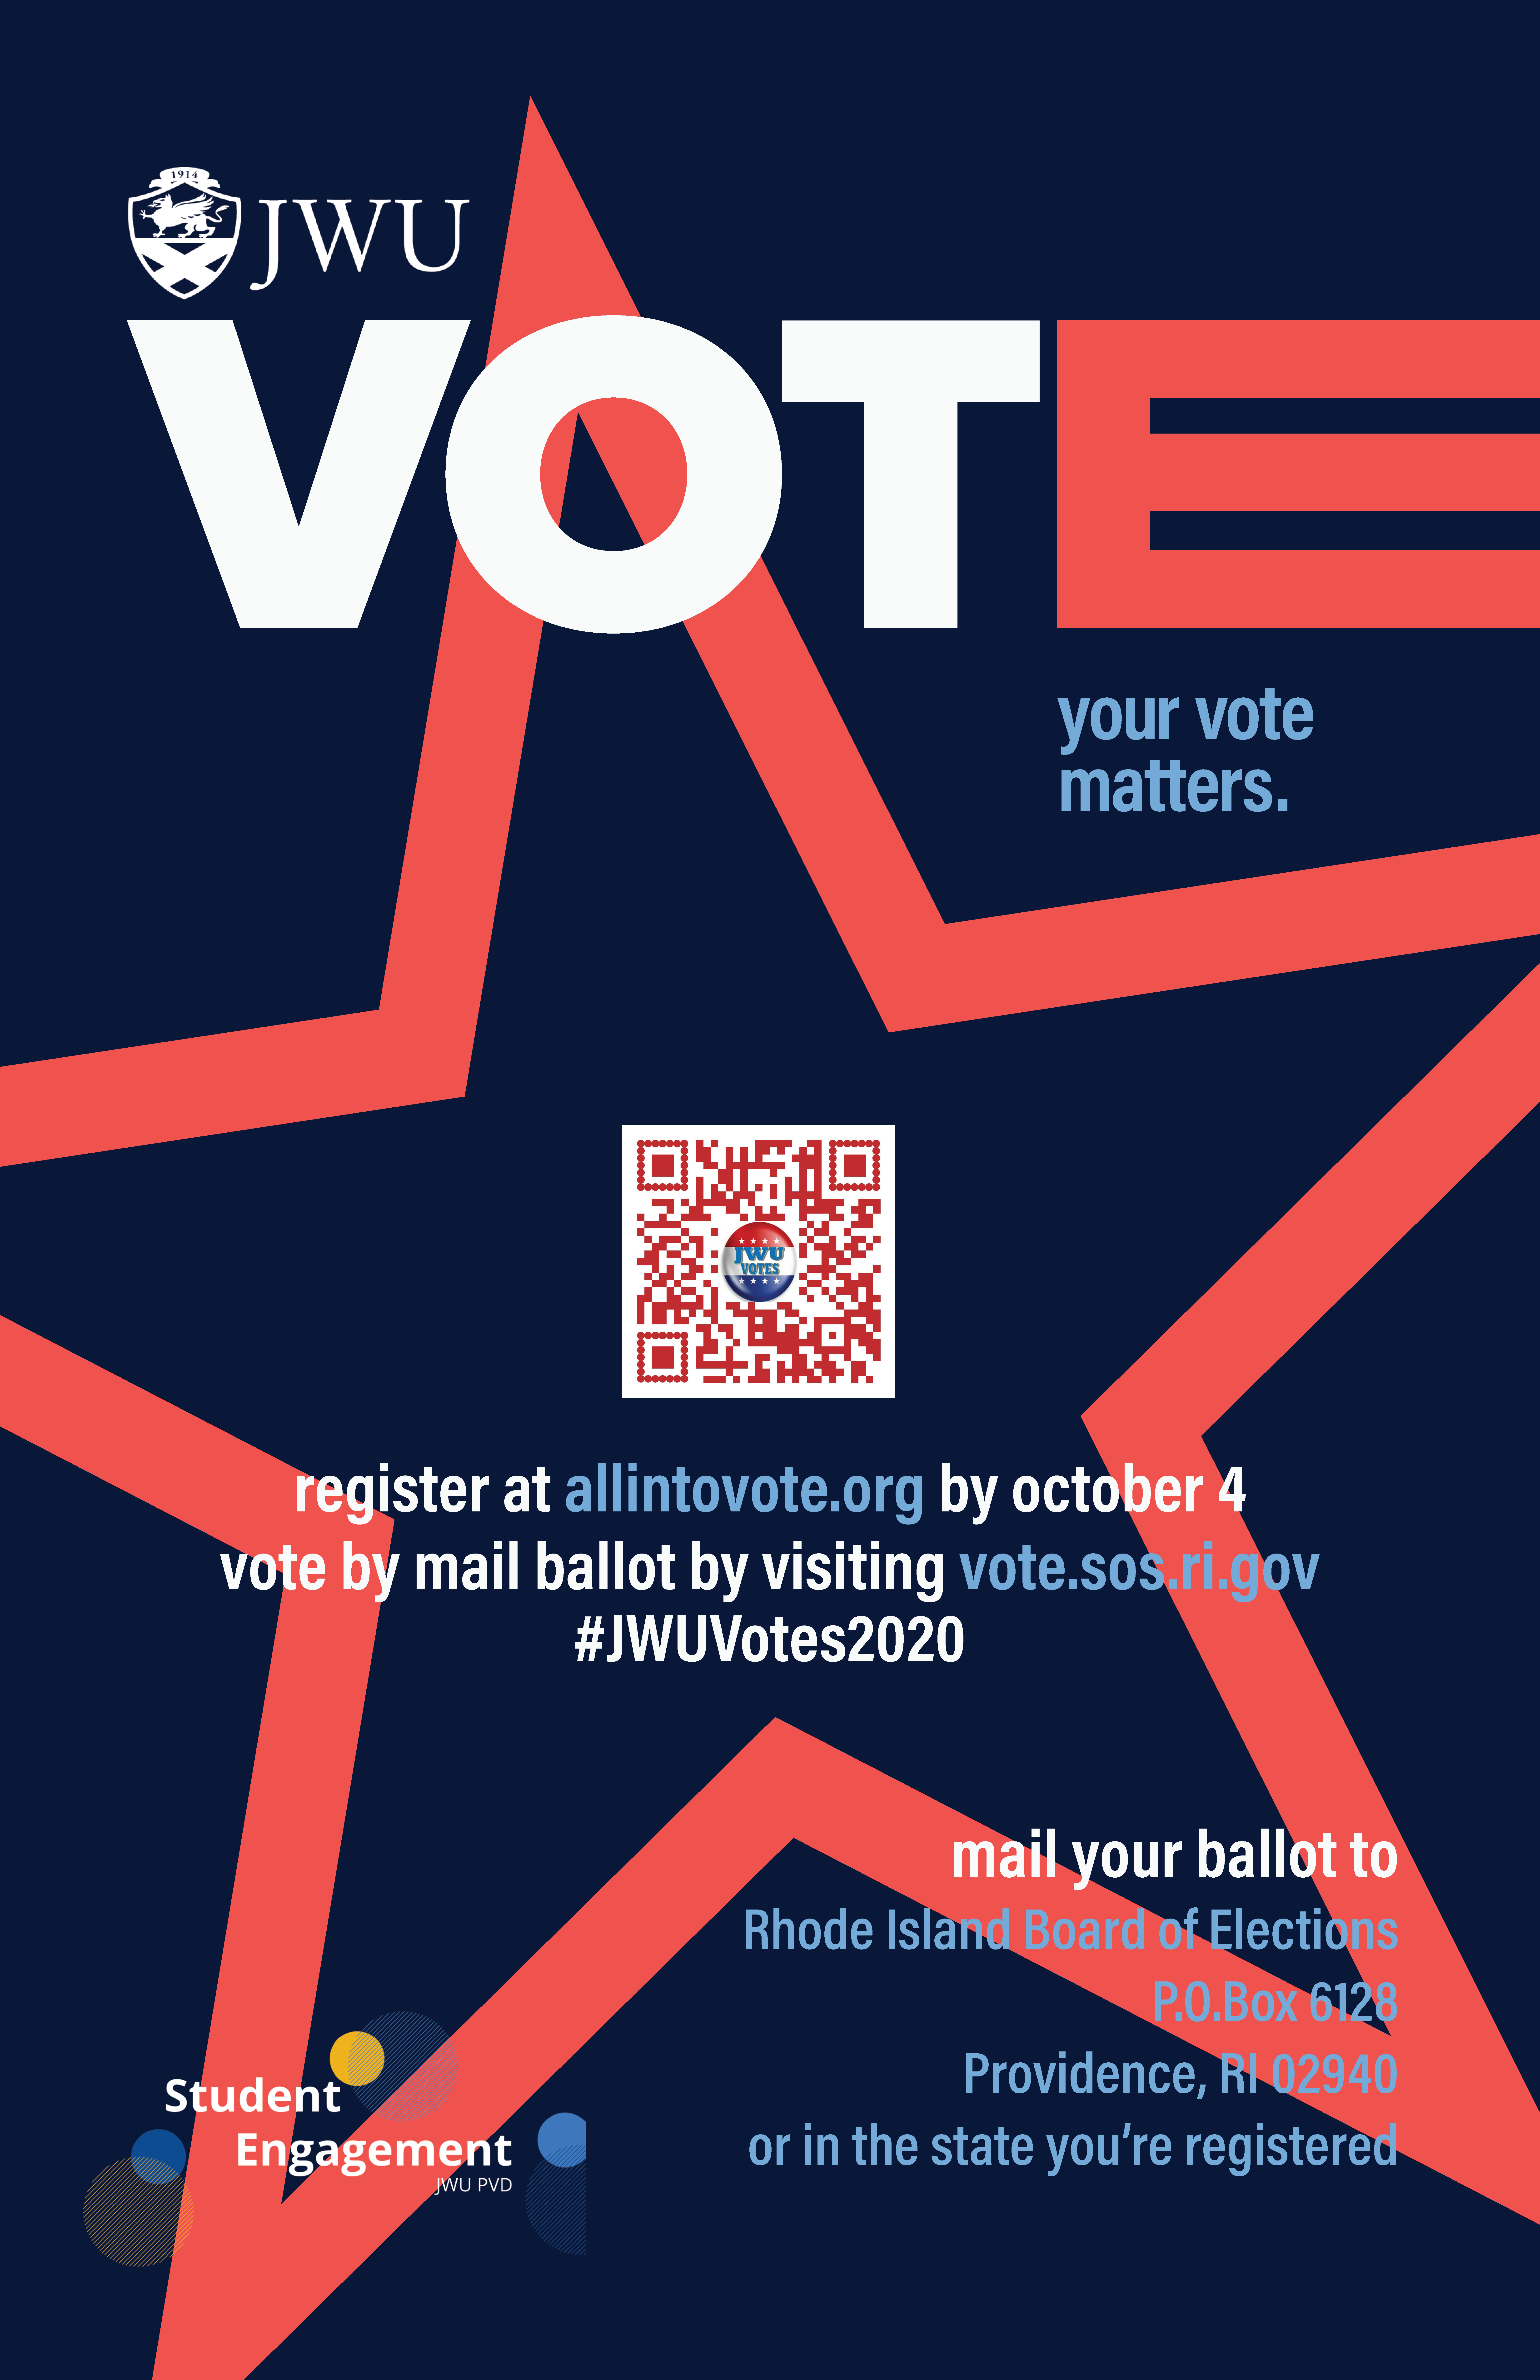 allintovote.org